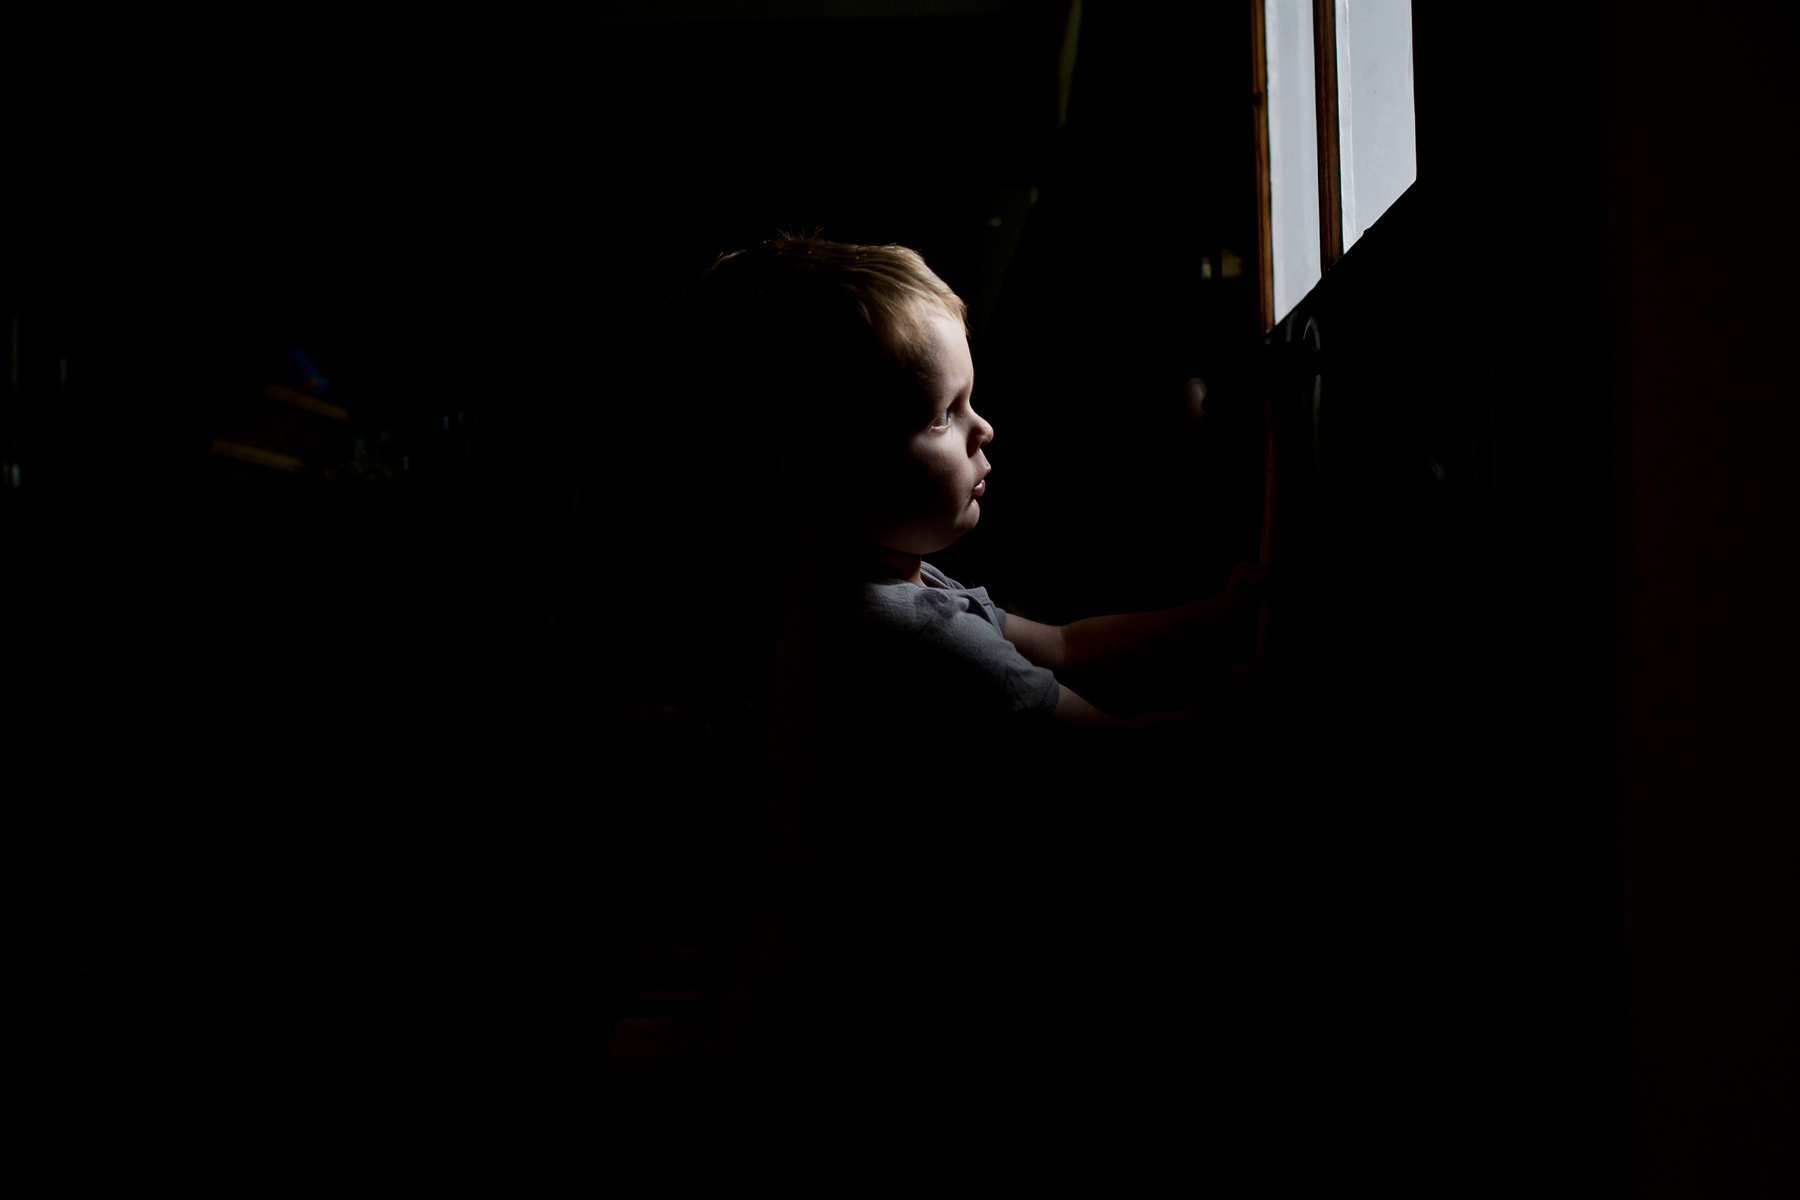 little boy's face lit by morning light through the window while the rest of the room is in shadows